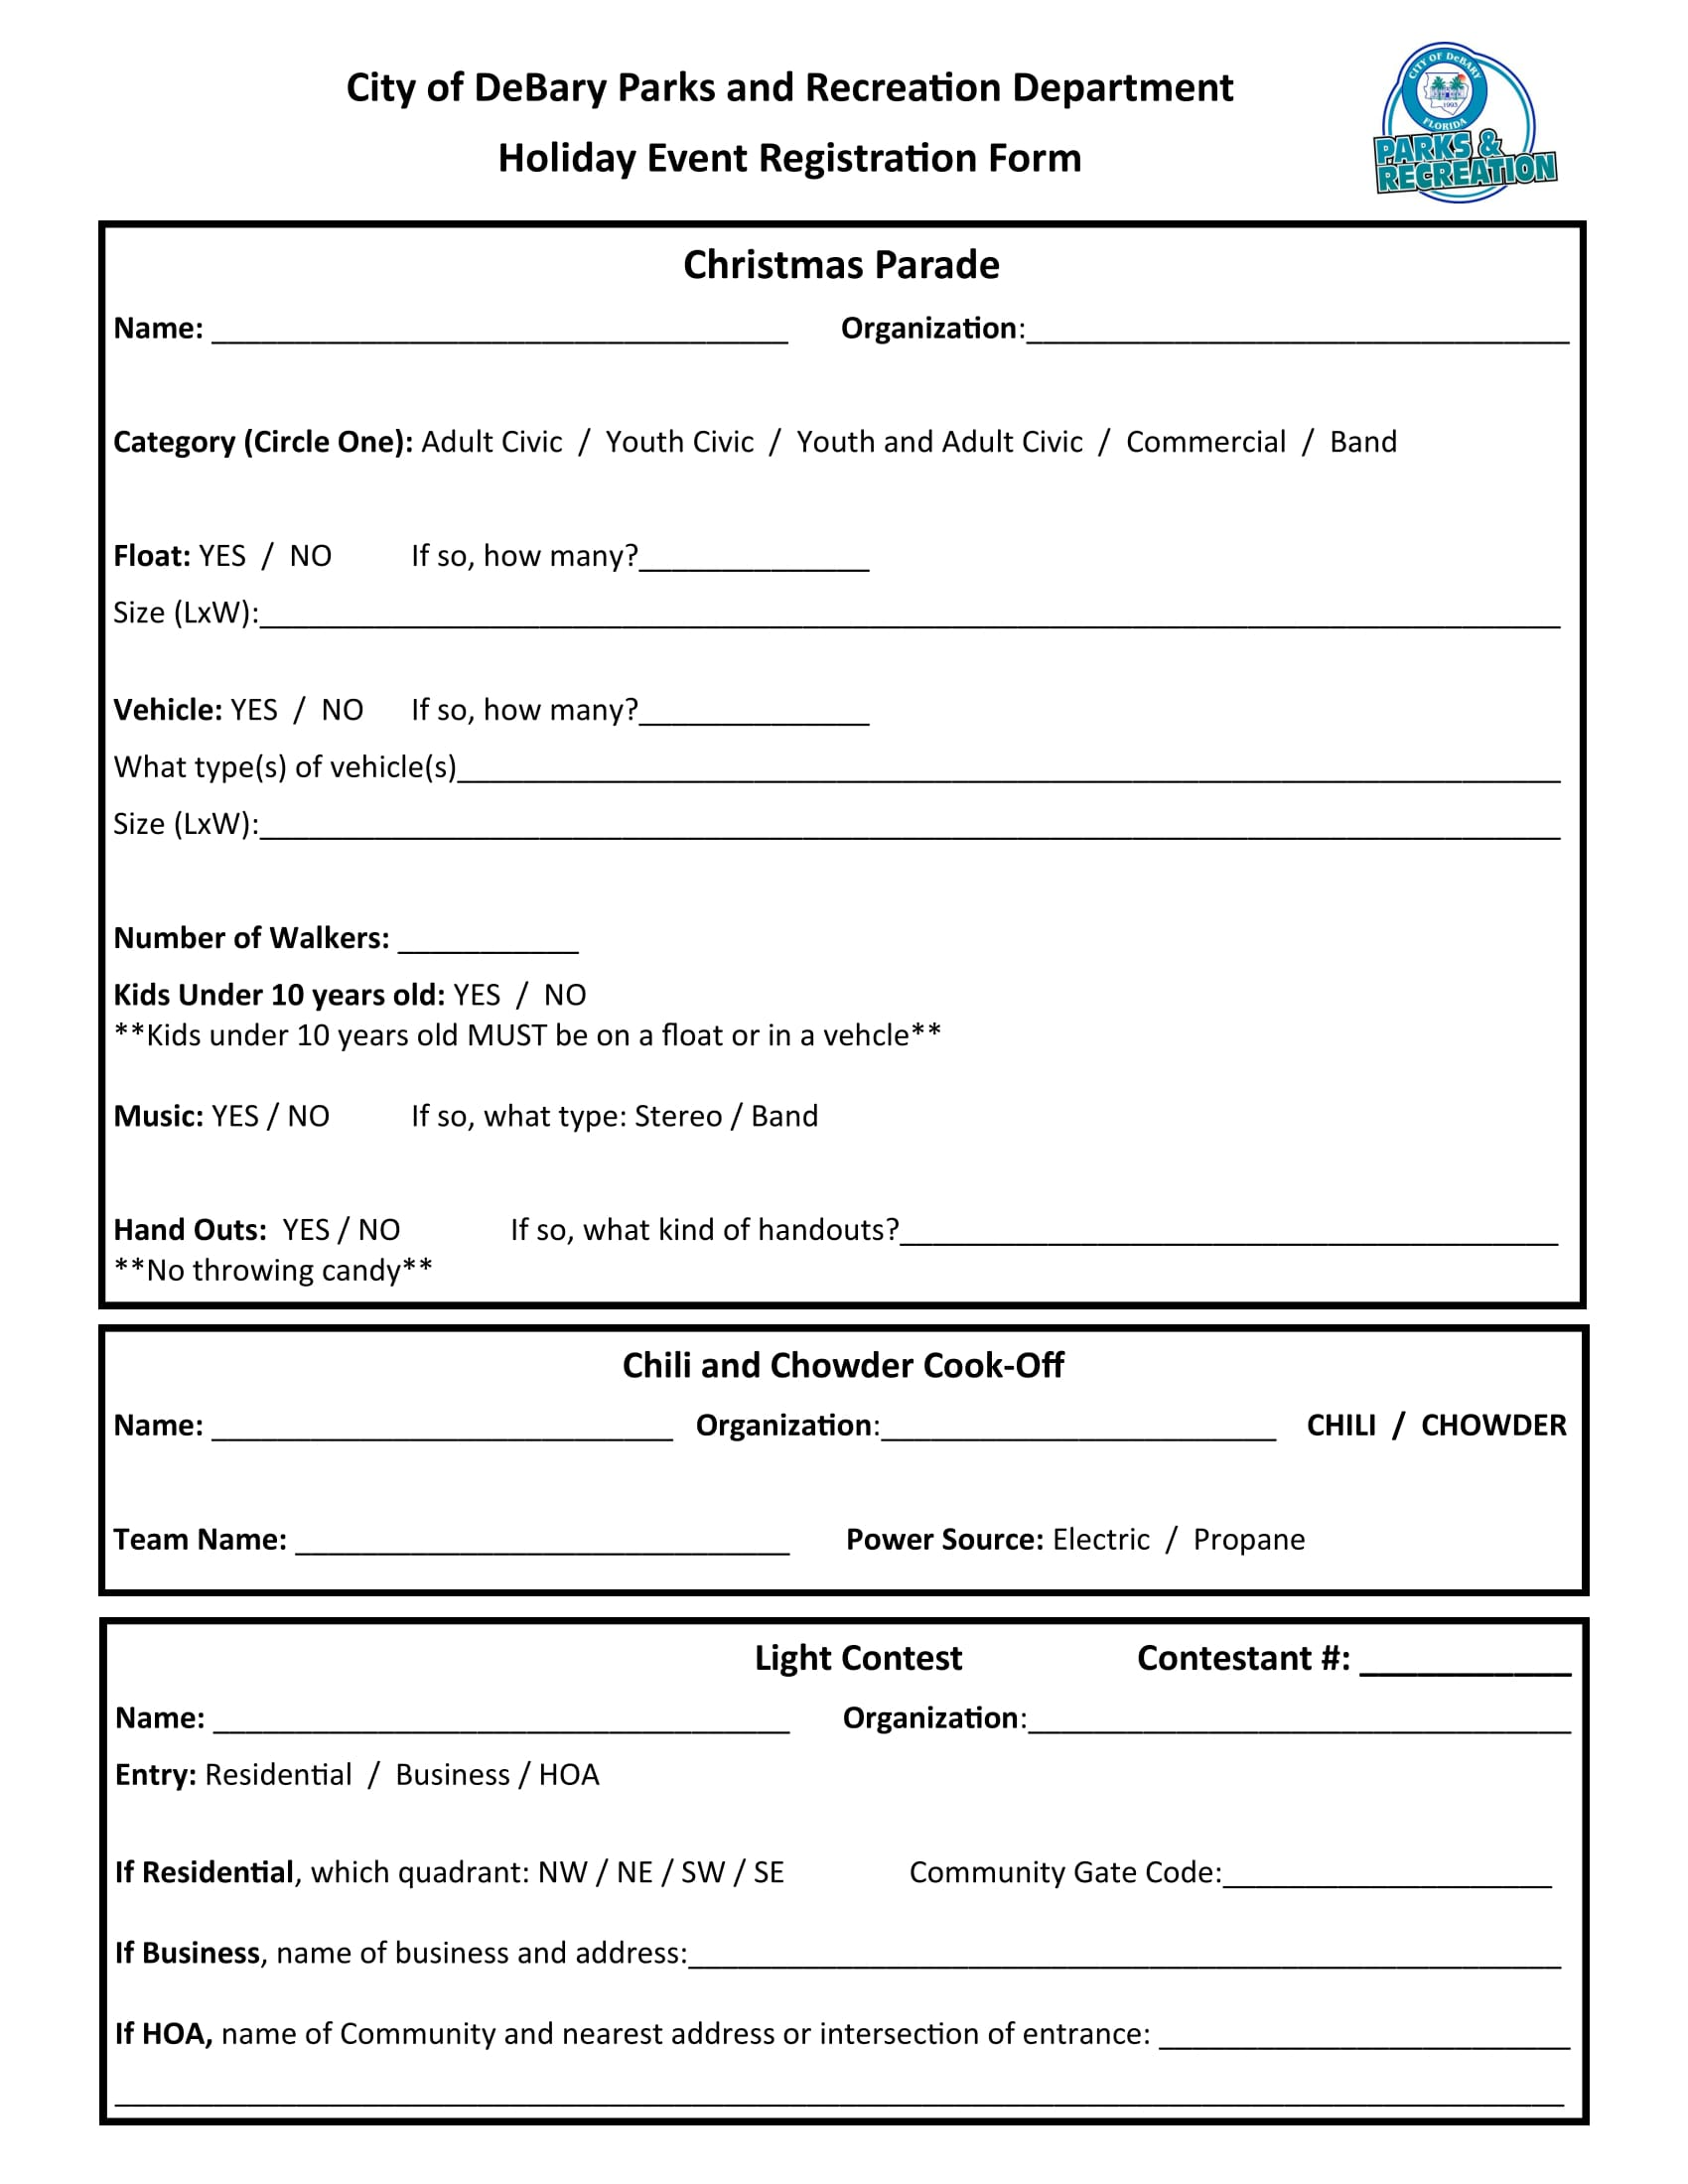 holiday event registration form 1